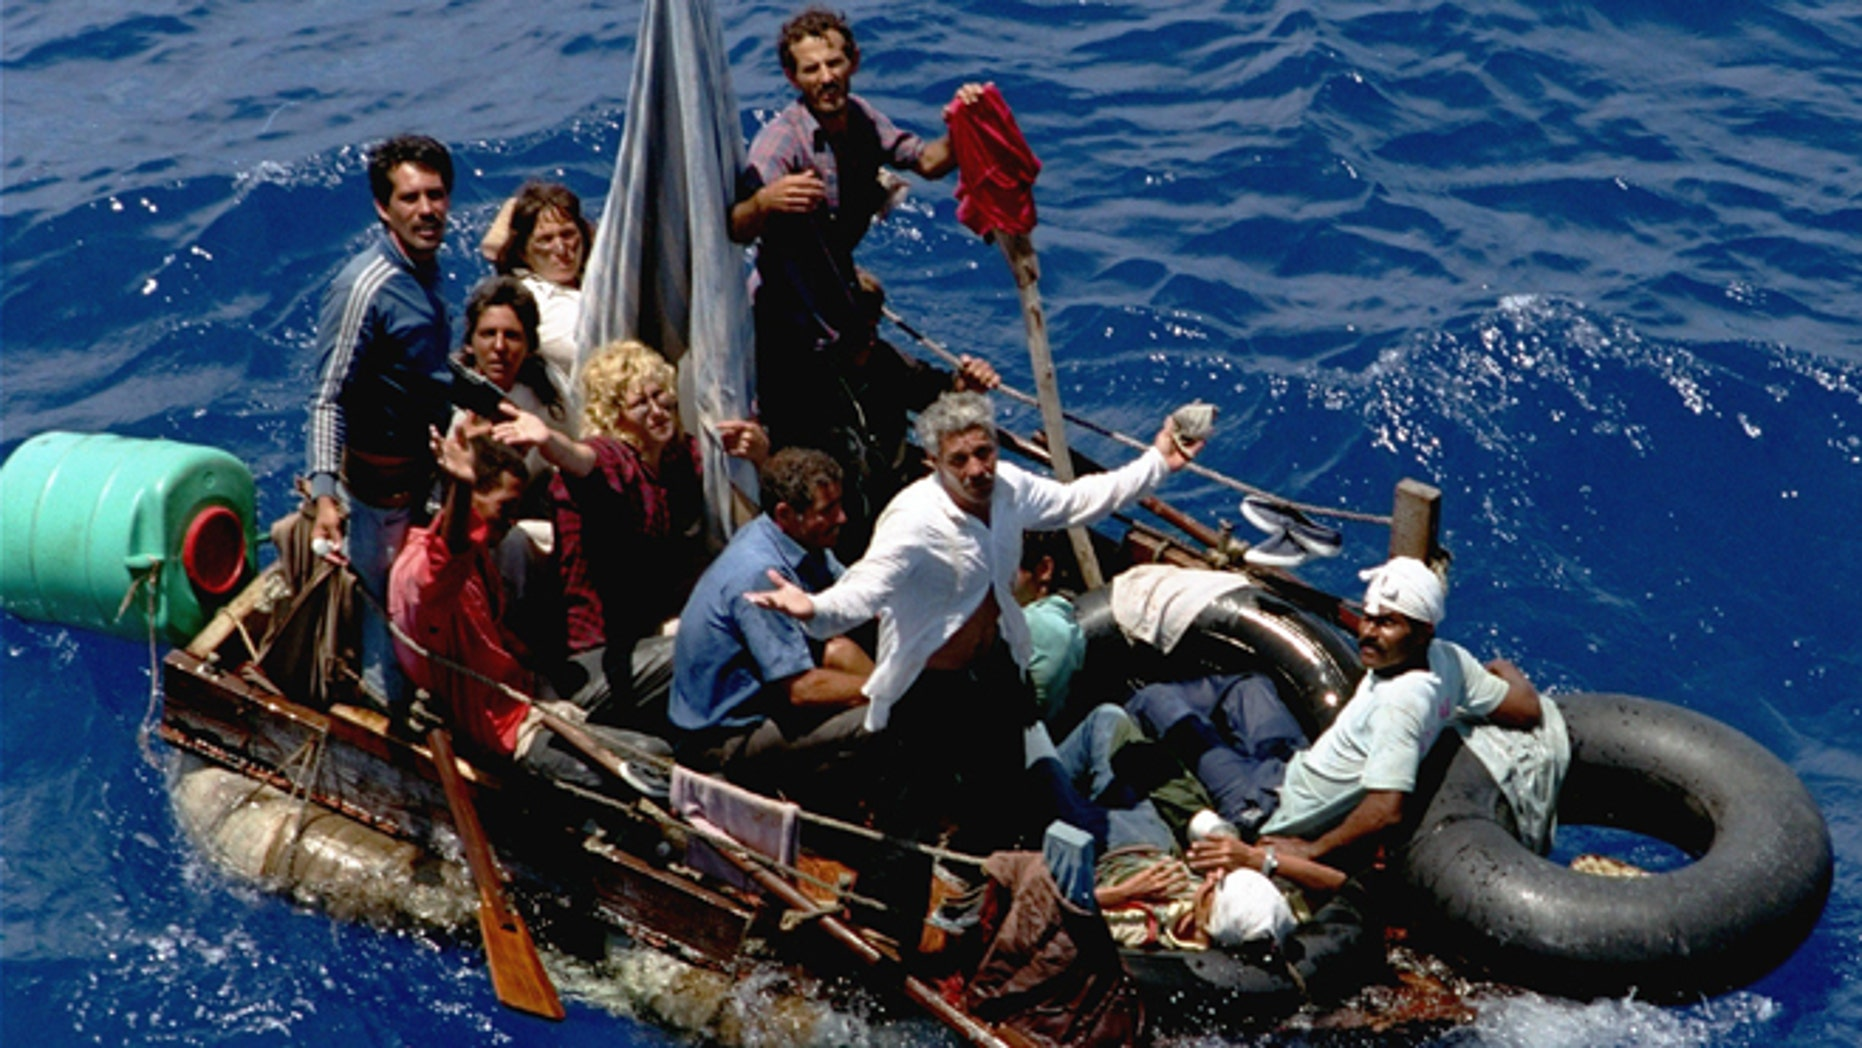 FILE - In this Aug. 24, 1994 file photo, Cuban refugees stranded on a makeshift raft float in the open sea about halfway between Key West, Fla., and Cuba. While more than 50 years of enmity between the United States and Cuba is slowly vanishing, the renewed relationship is sparking fears on the communist island nation that the U.S. could also erase a unique immigration policy that favors Cubans. (AP Photo/Hans Deryk, File)